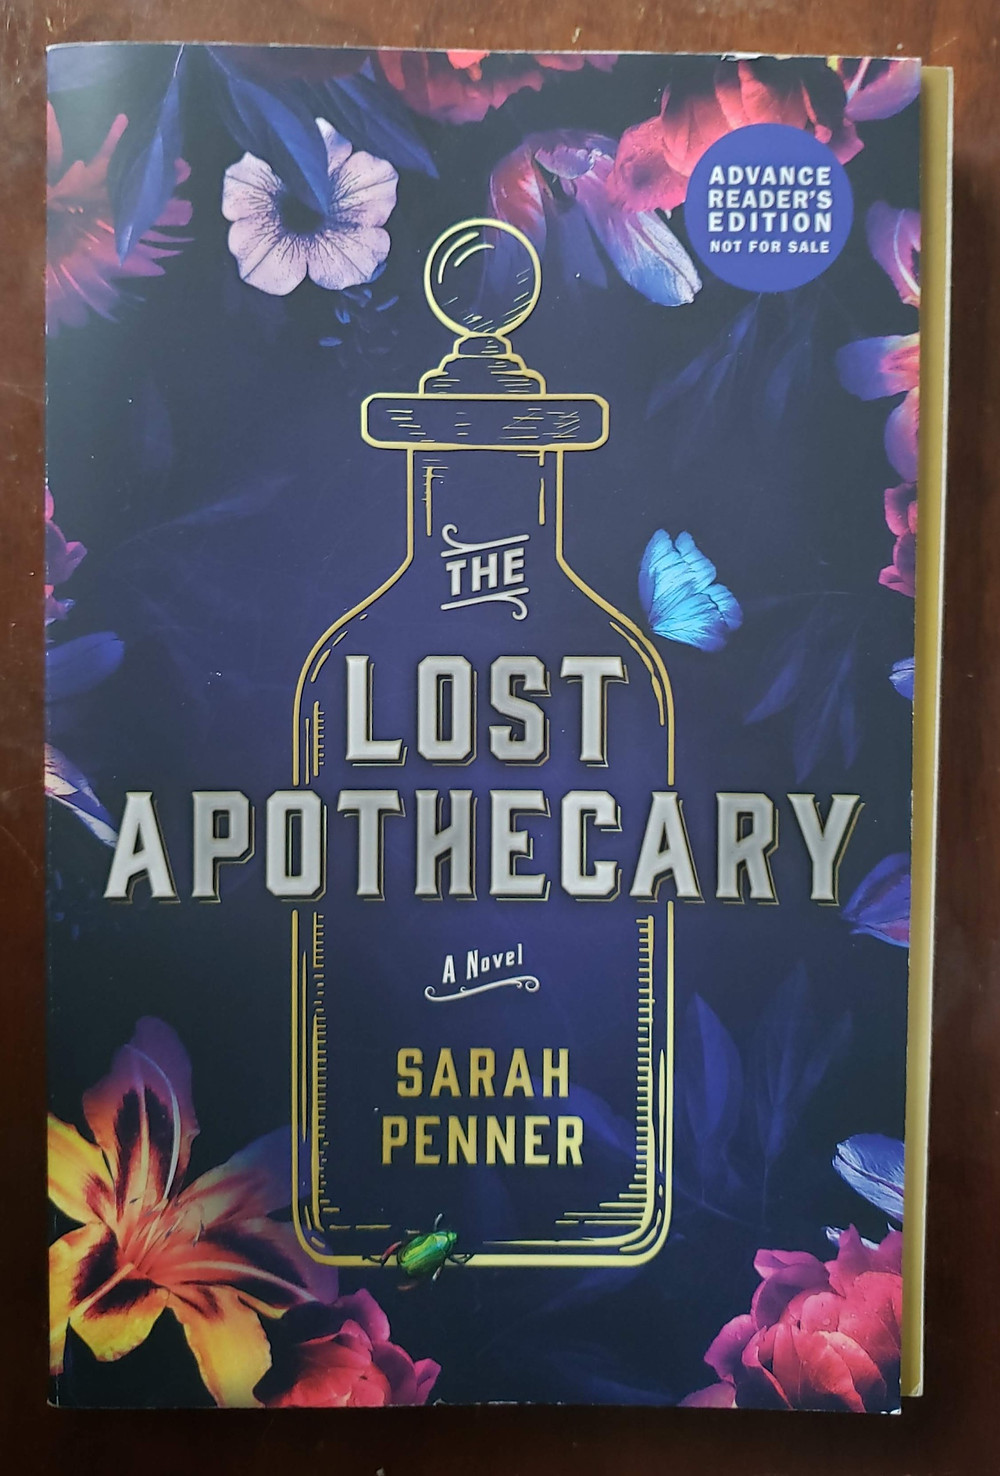 The front facing cover of the book The Lost Apothecary by Sarah Penner.